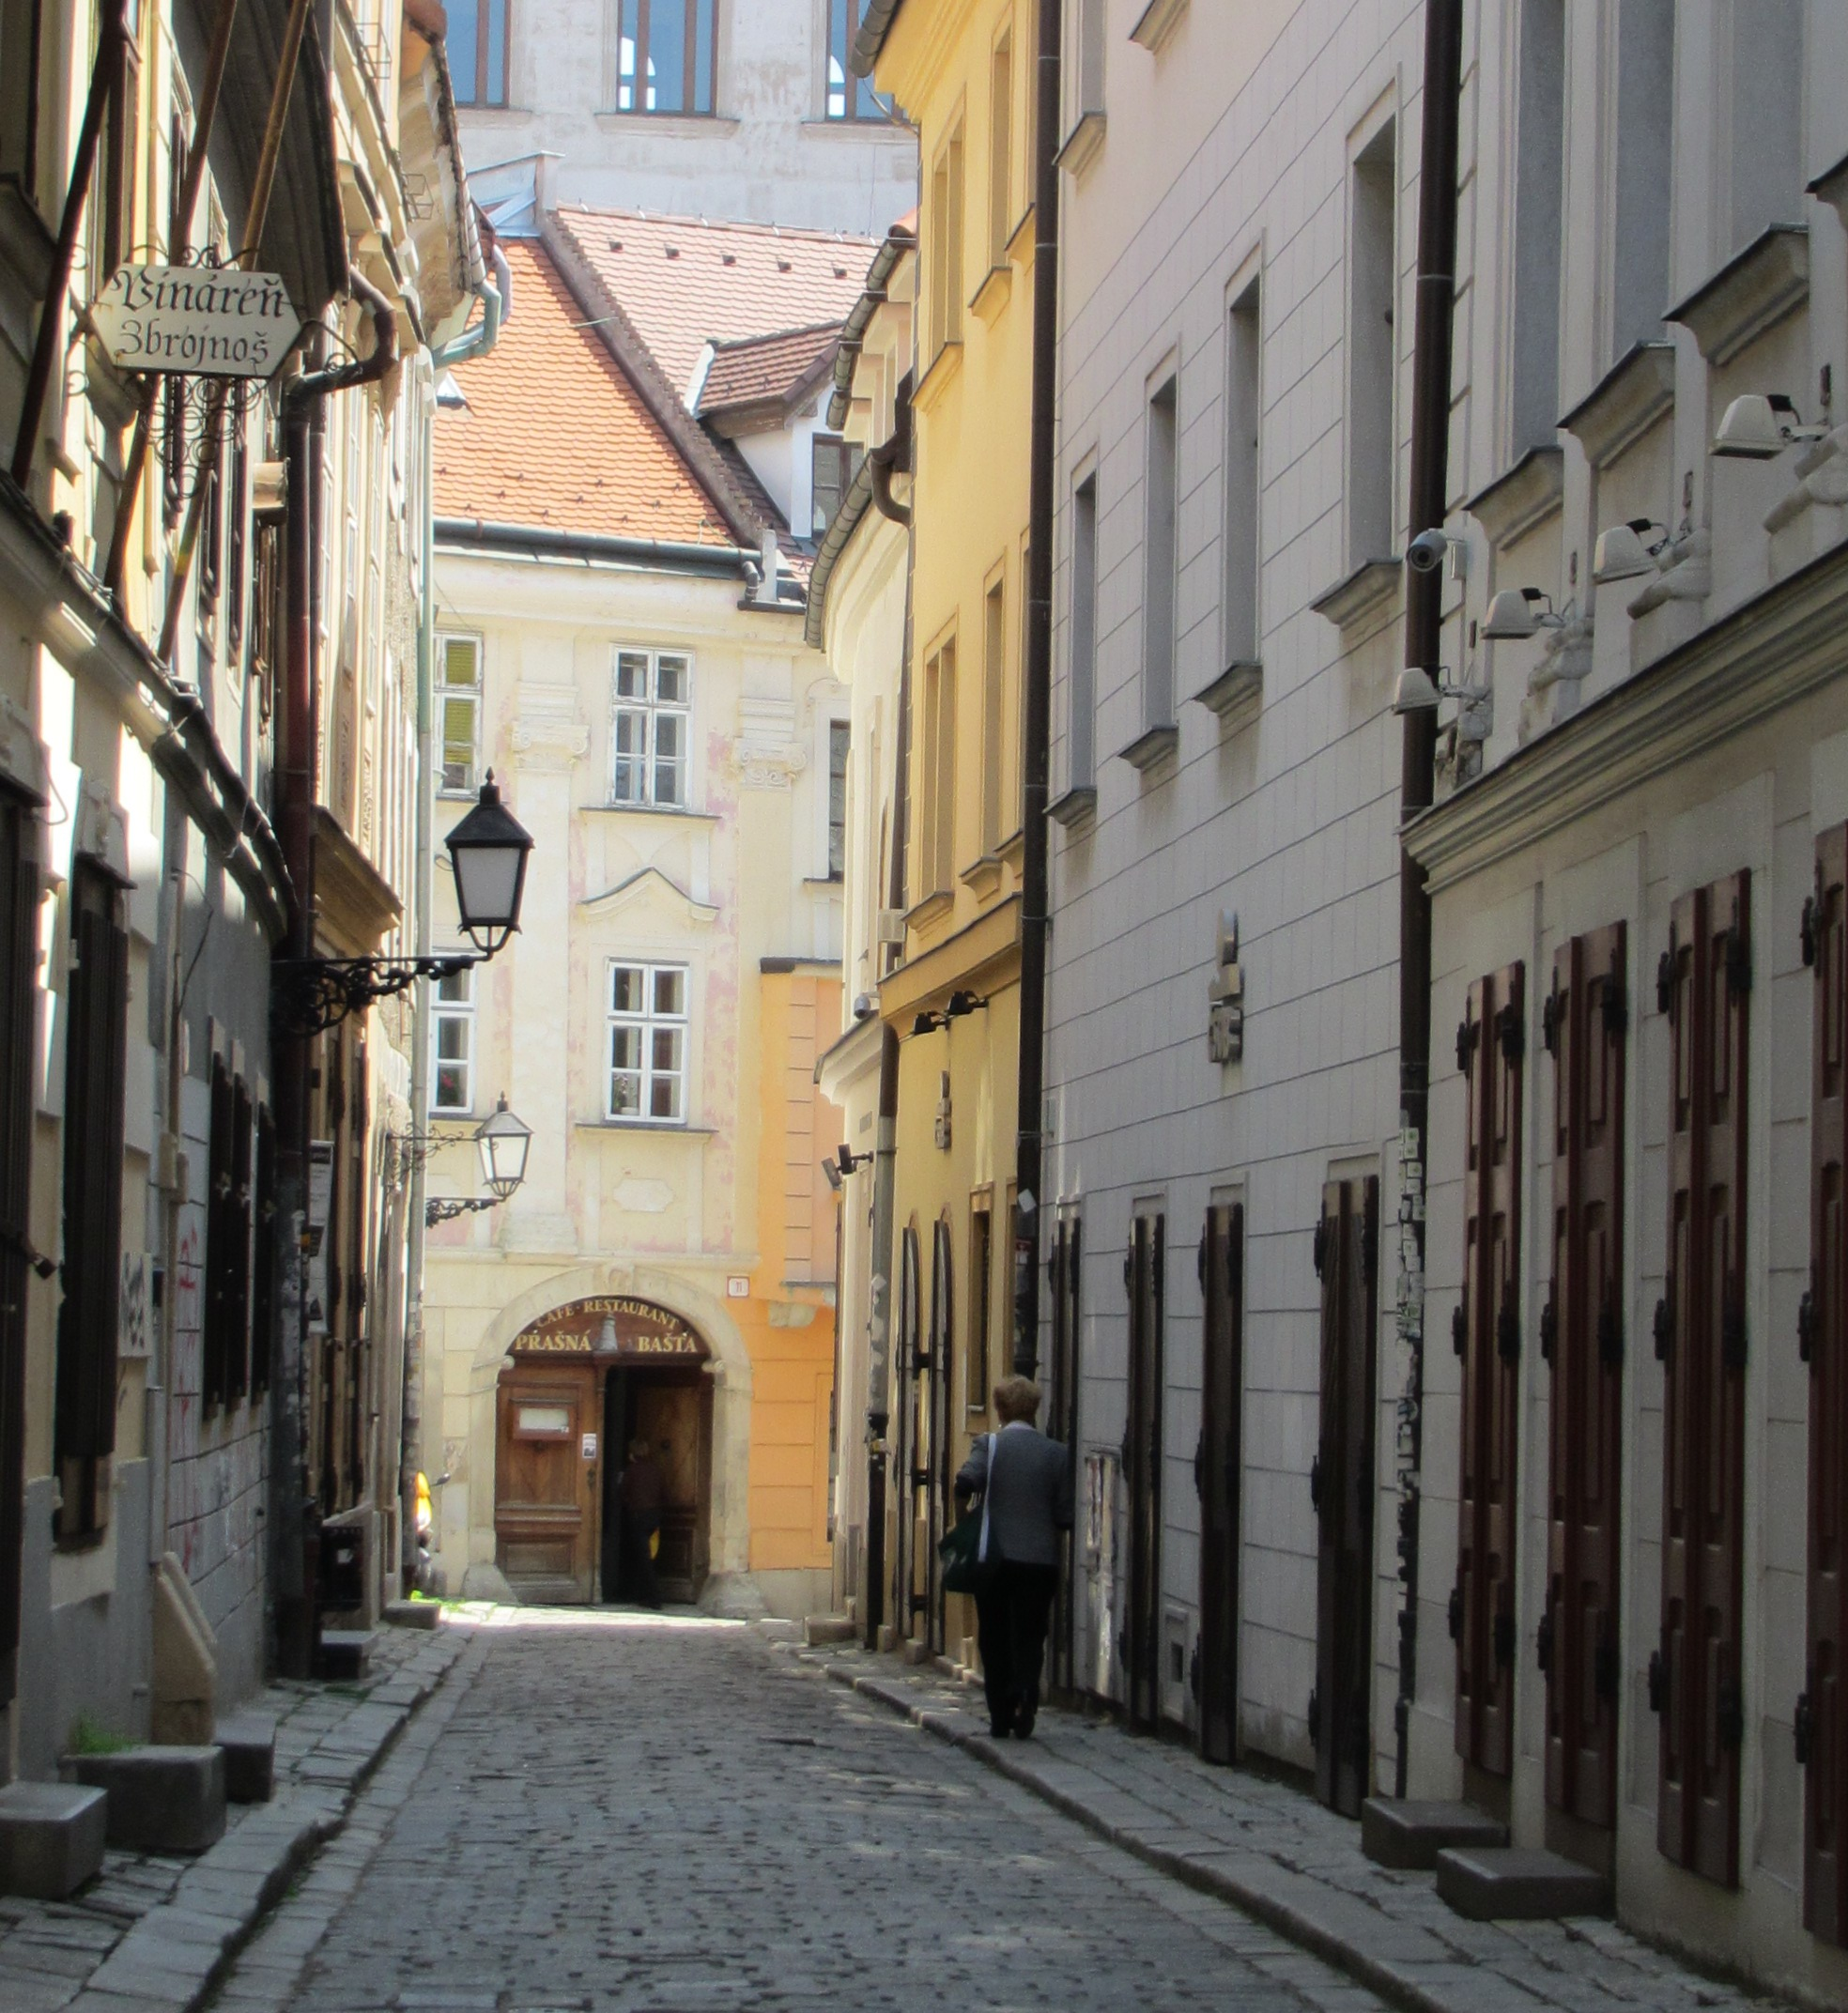 Bratislava Old Town charms us | I Do Not Despair